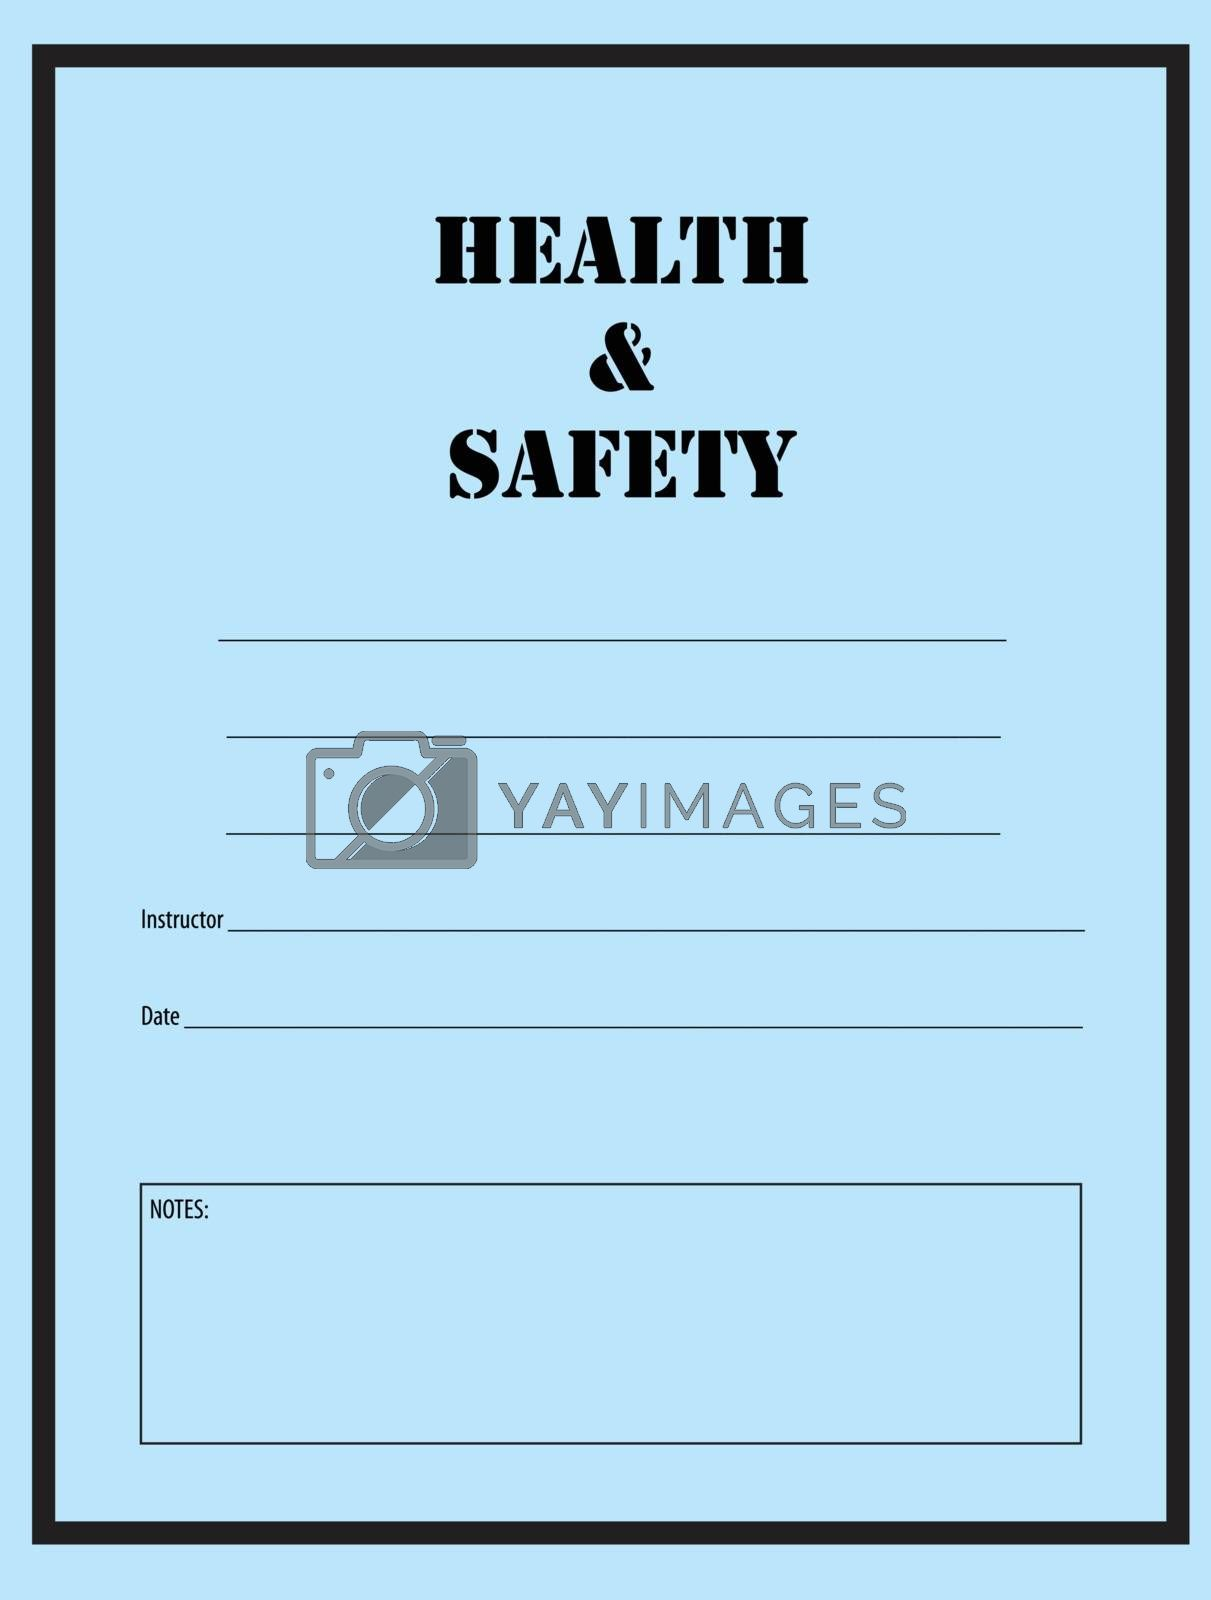 Health and safety, log in the industrial works. Vector illustration.